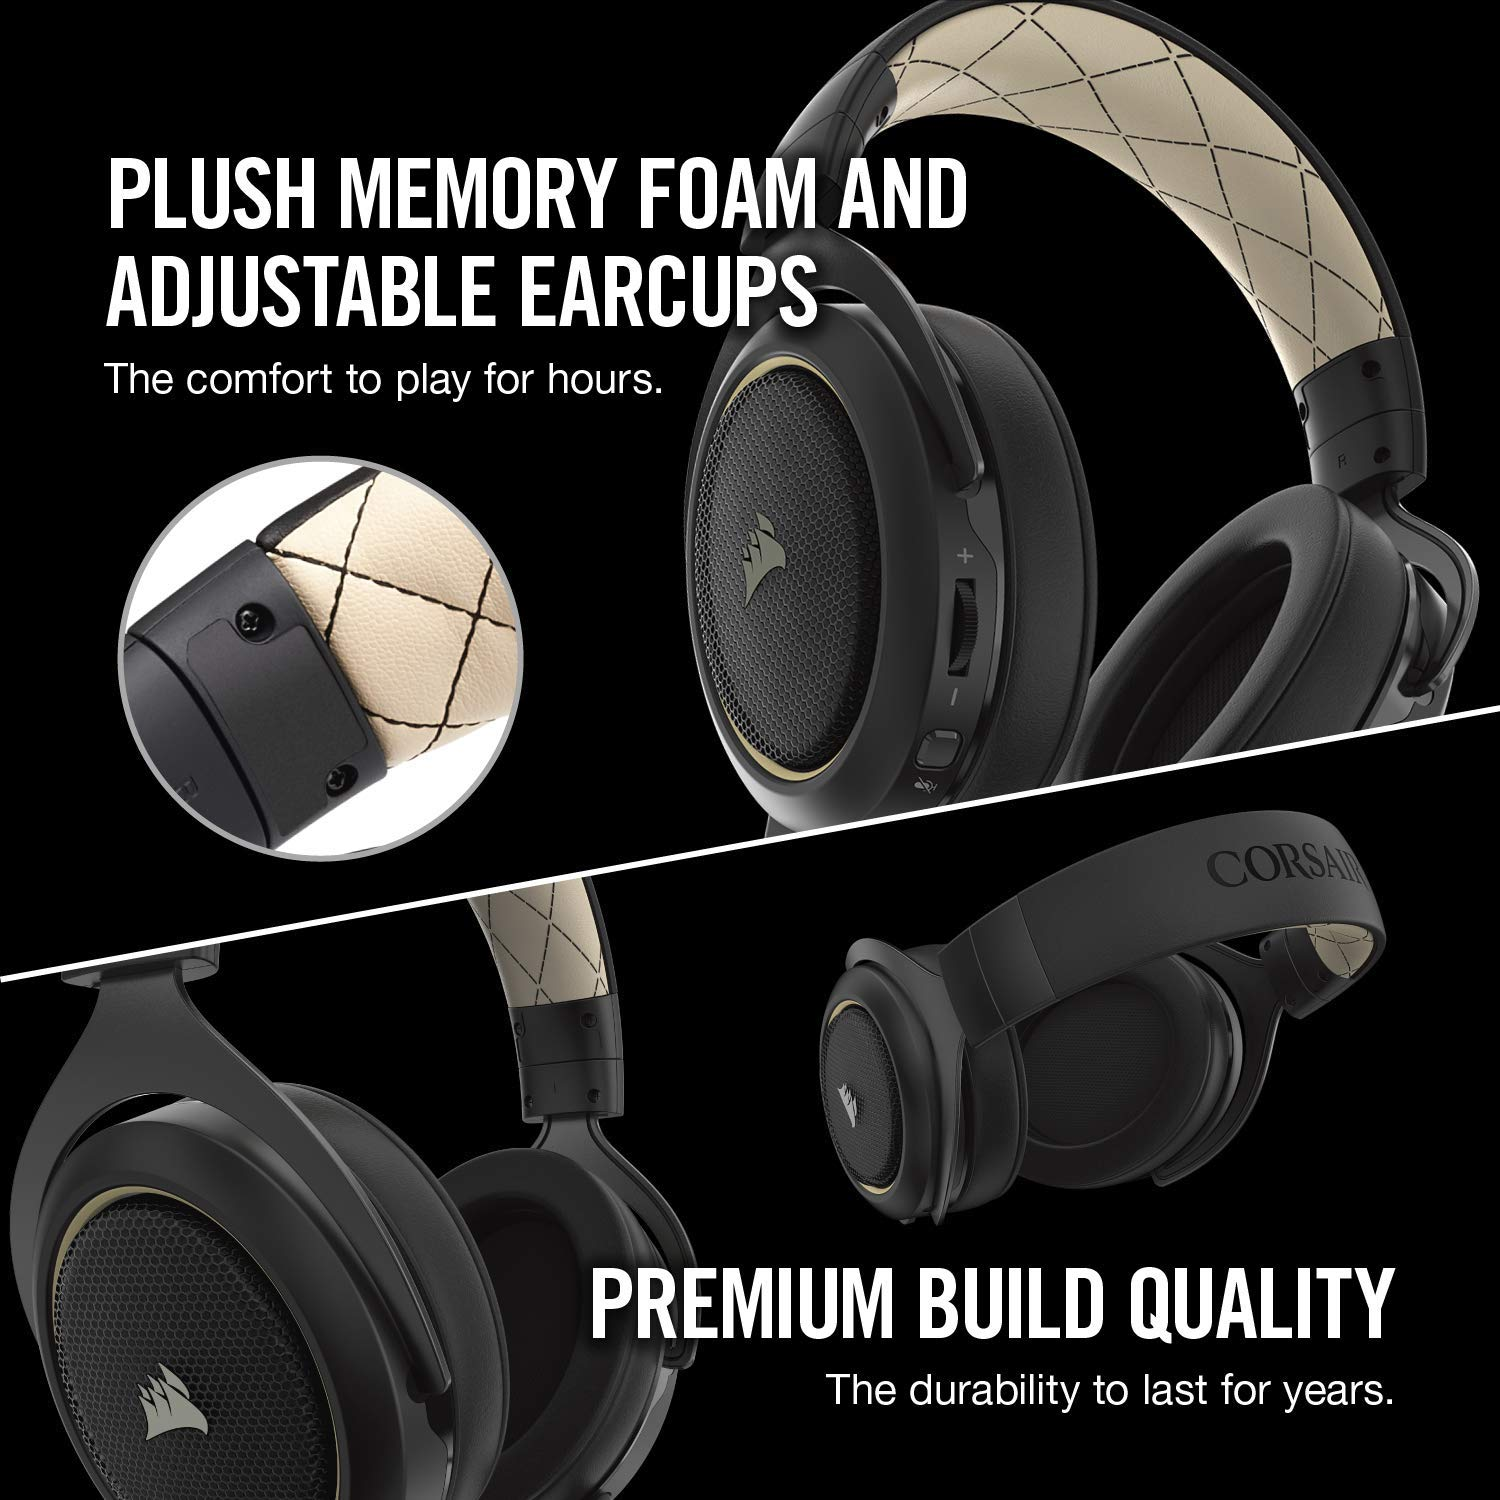 CORSAIR HS70 SE Wireless - 7.1 Surround Sound Gaming Headset - Discord Certified Headphones - Special Edition by Corsair (Image #2)